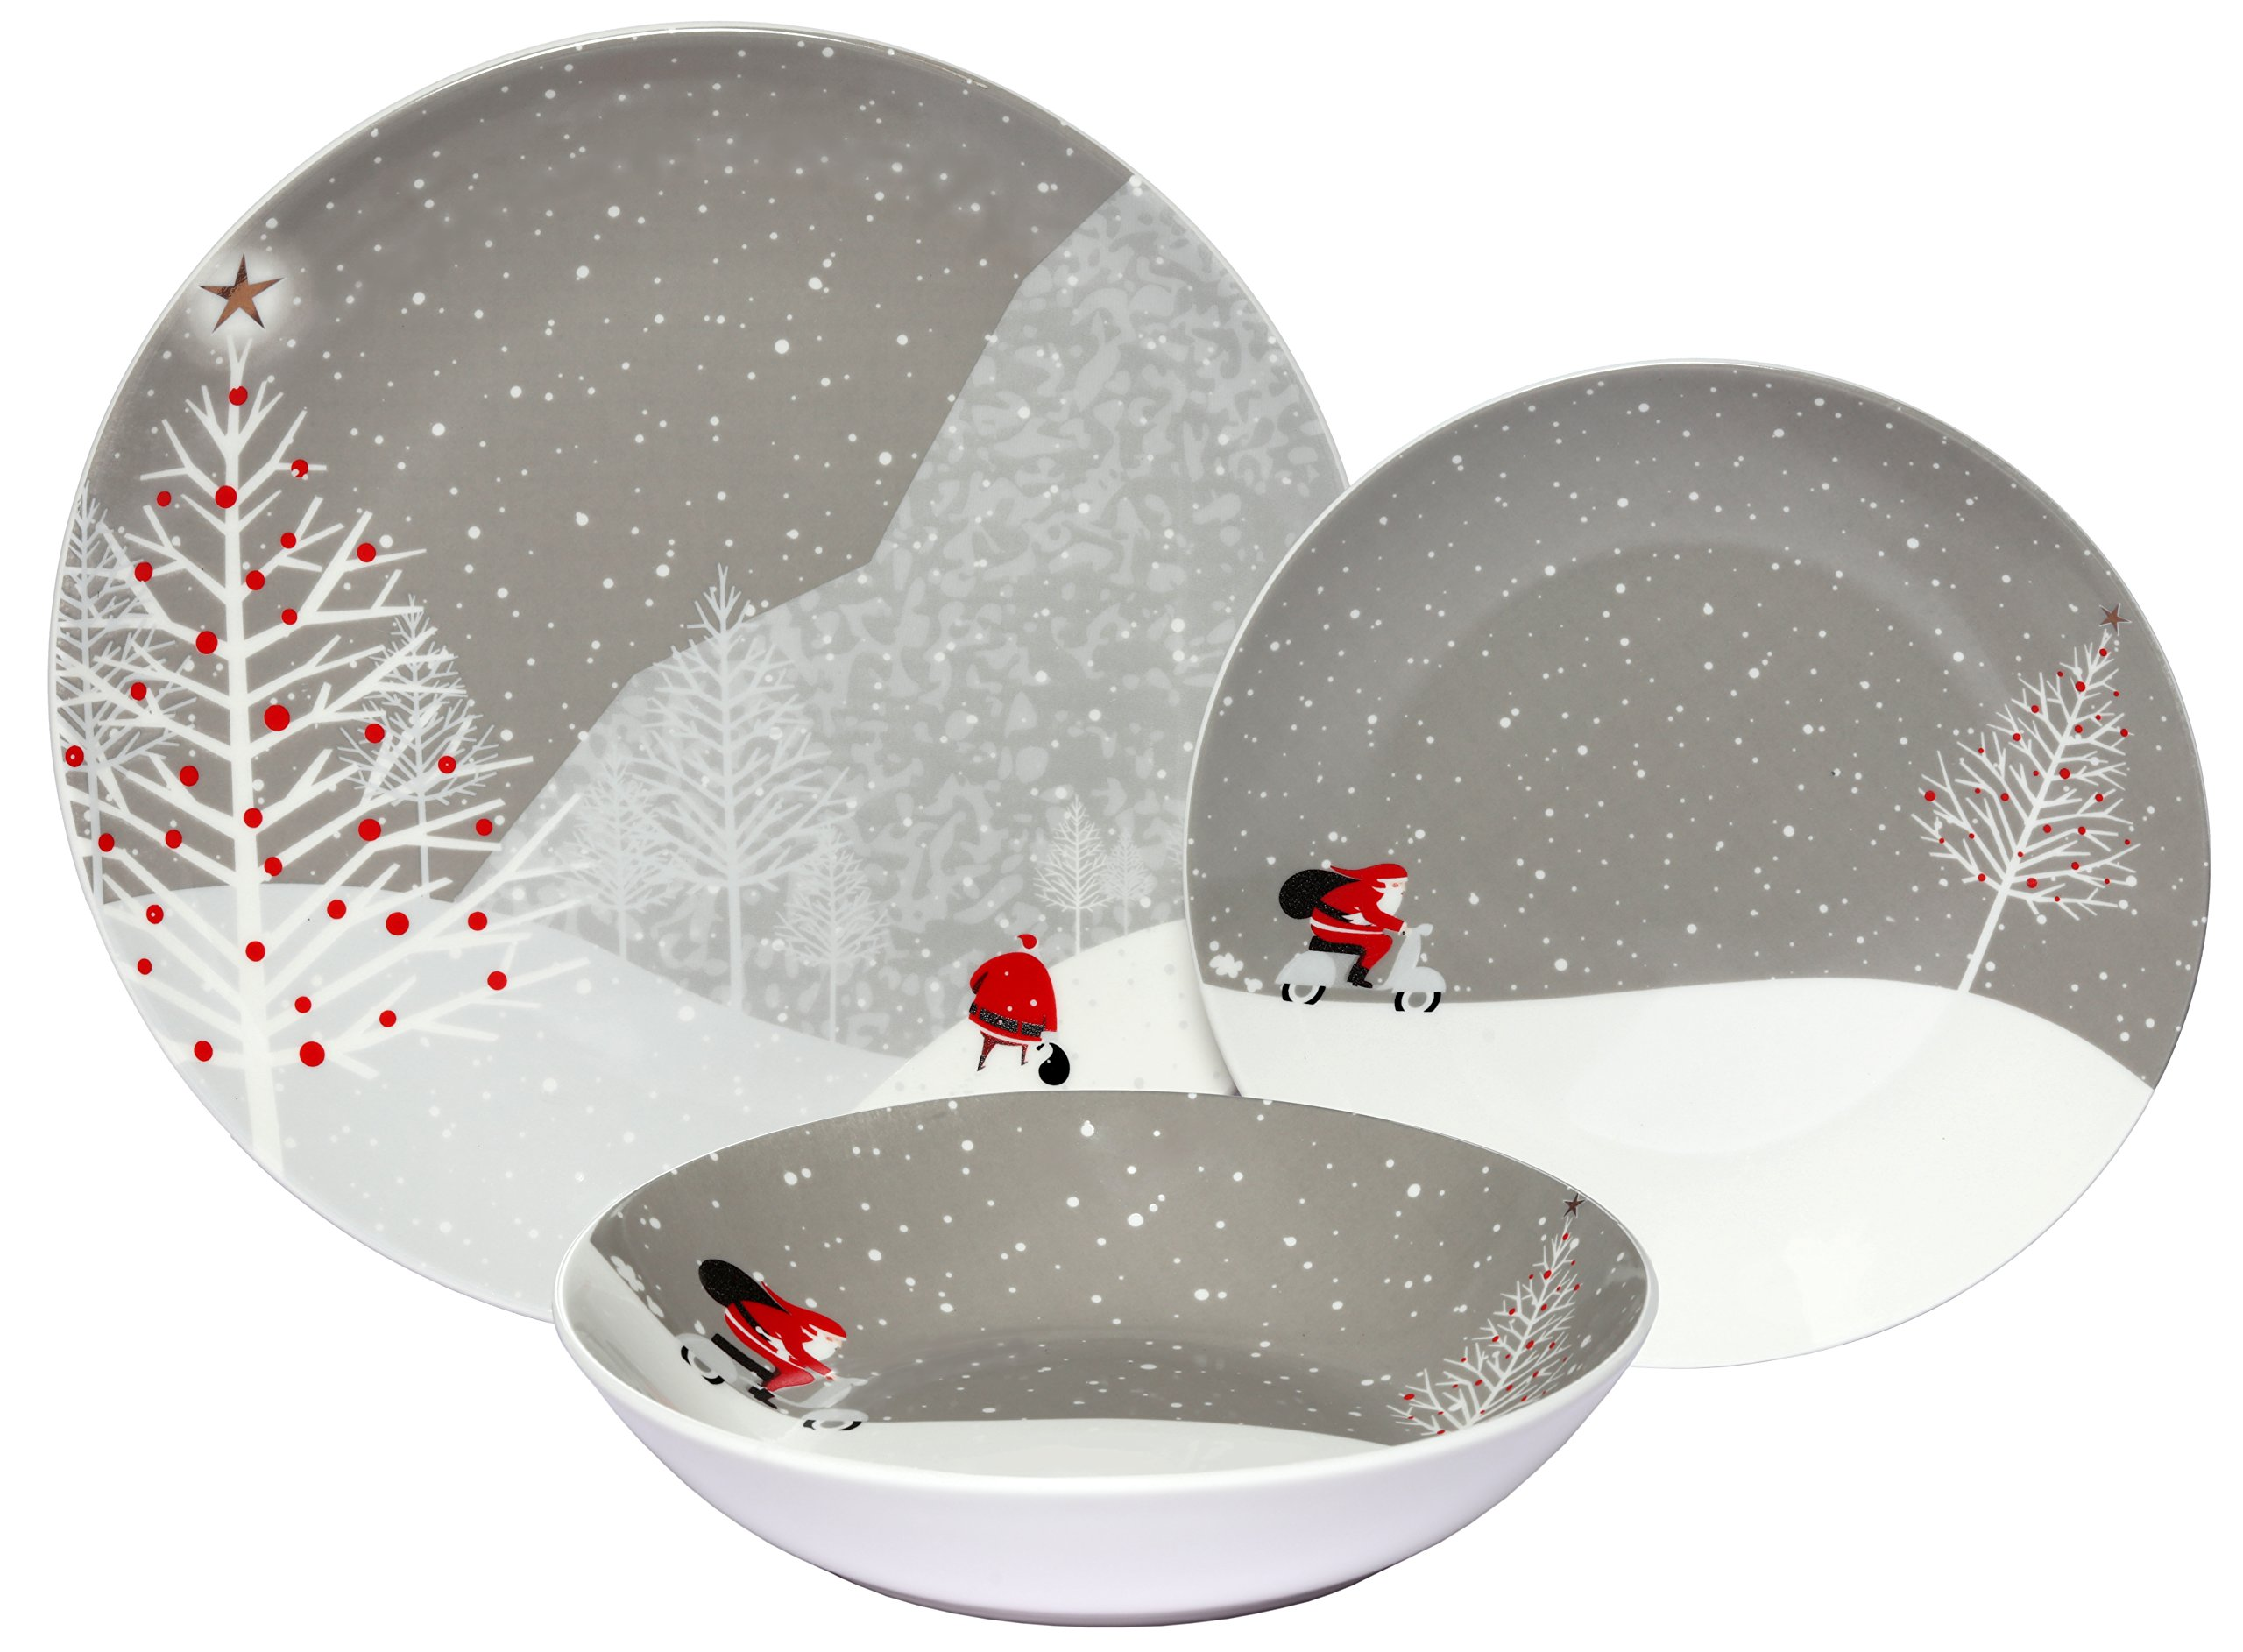 Melange Coupe 36-Piece Porcelain Dinnerware Set (Santa Comes Home) | Service for 12 | Microwave, Dishwasher & Oven Safe | Dinner Plate, Salad Plate & Soup Bowl (12 Each)